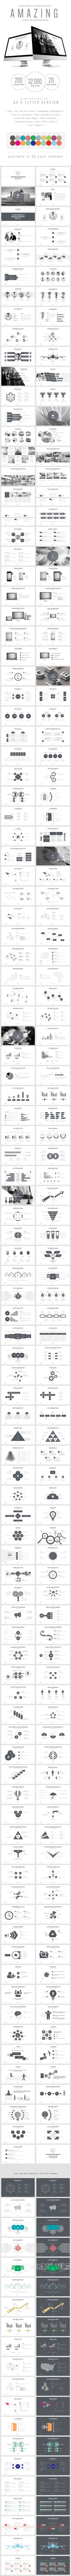 Multipurpose PowerPoint Presentation (Vol. 16) - Business PowerPoint Templates